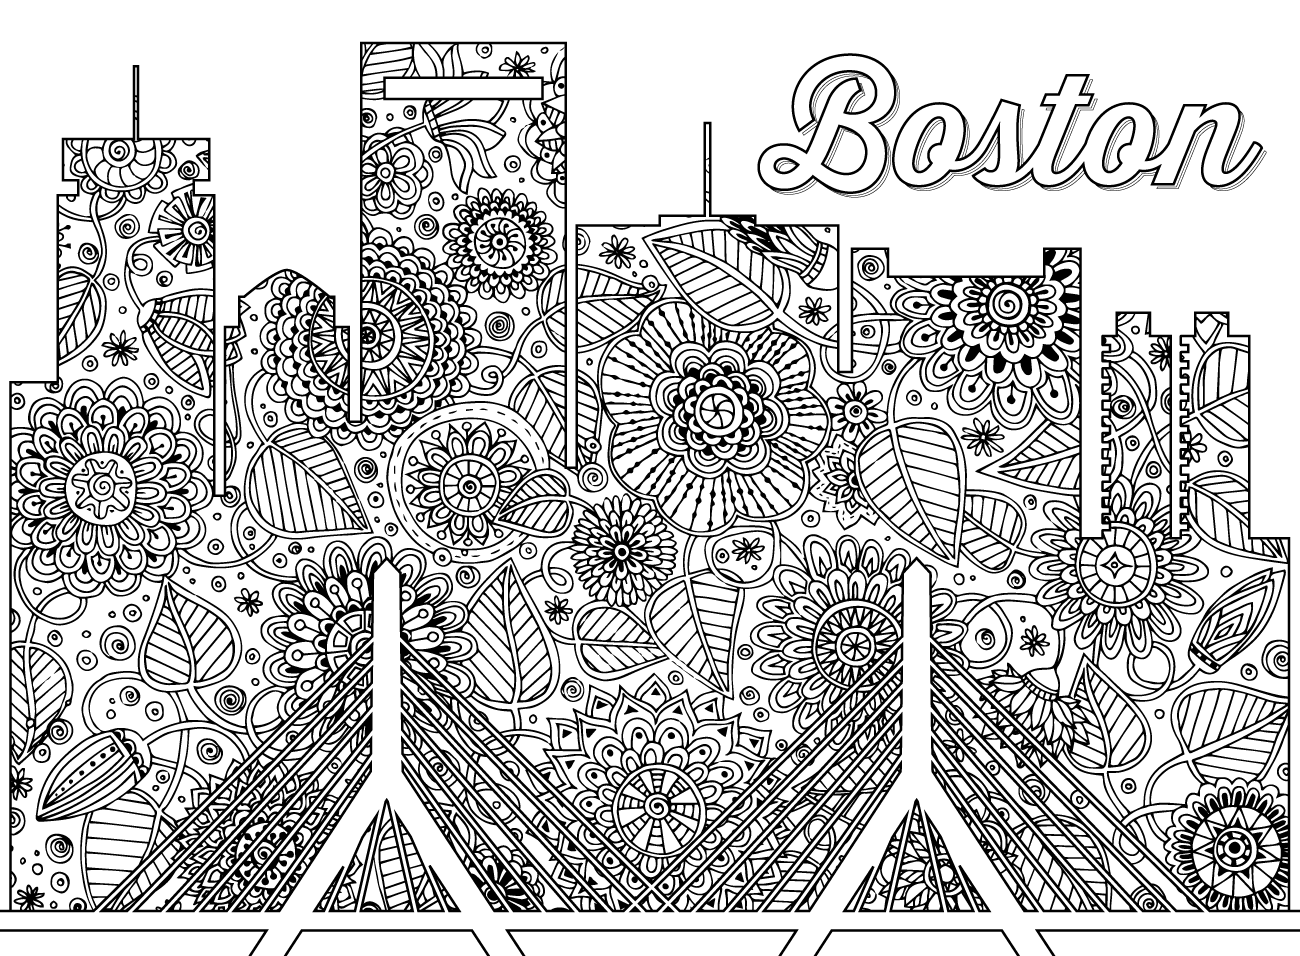 boston coloring pages boston red sox logo coloring page free printable coloring boston pages